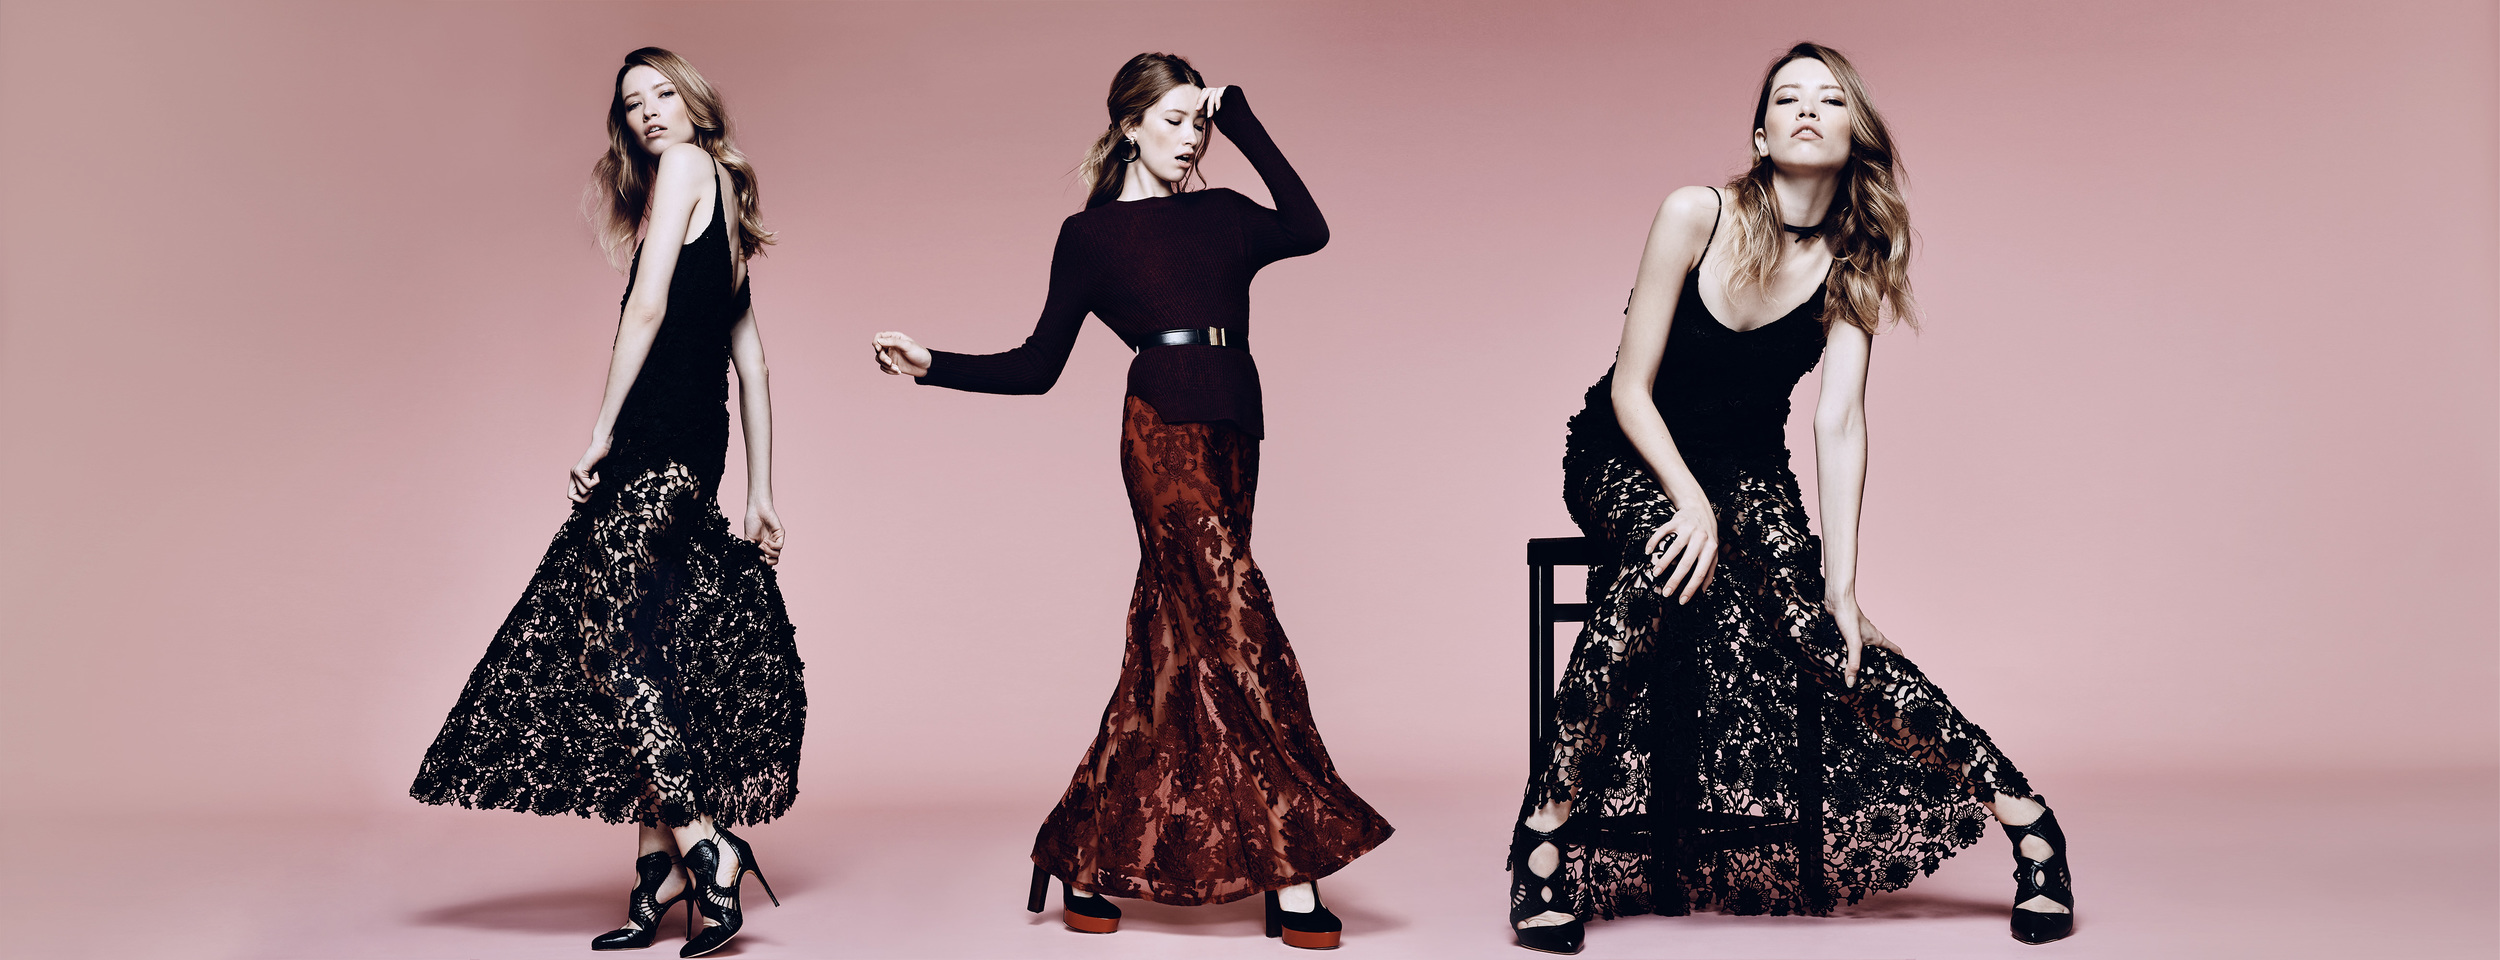 Holiday_Trends_Lace_PLP2_WRTW_1126483727_EDITORIAL_CAPTURE_038_COMP.jpg